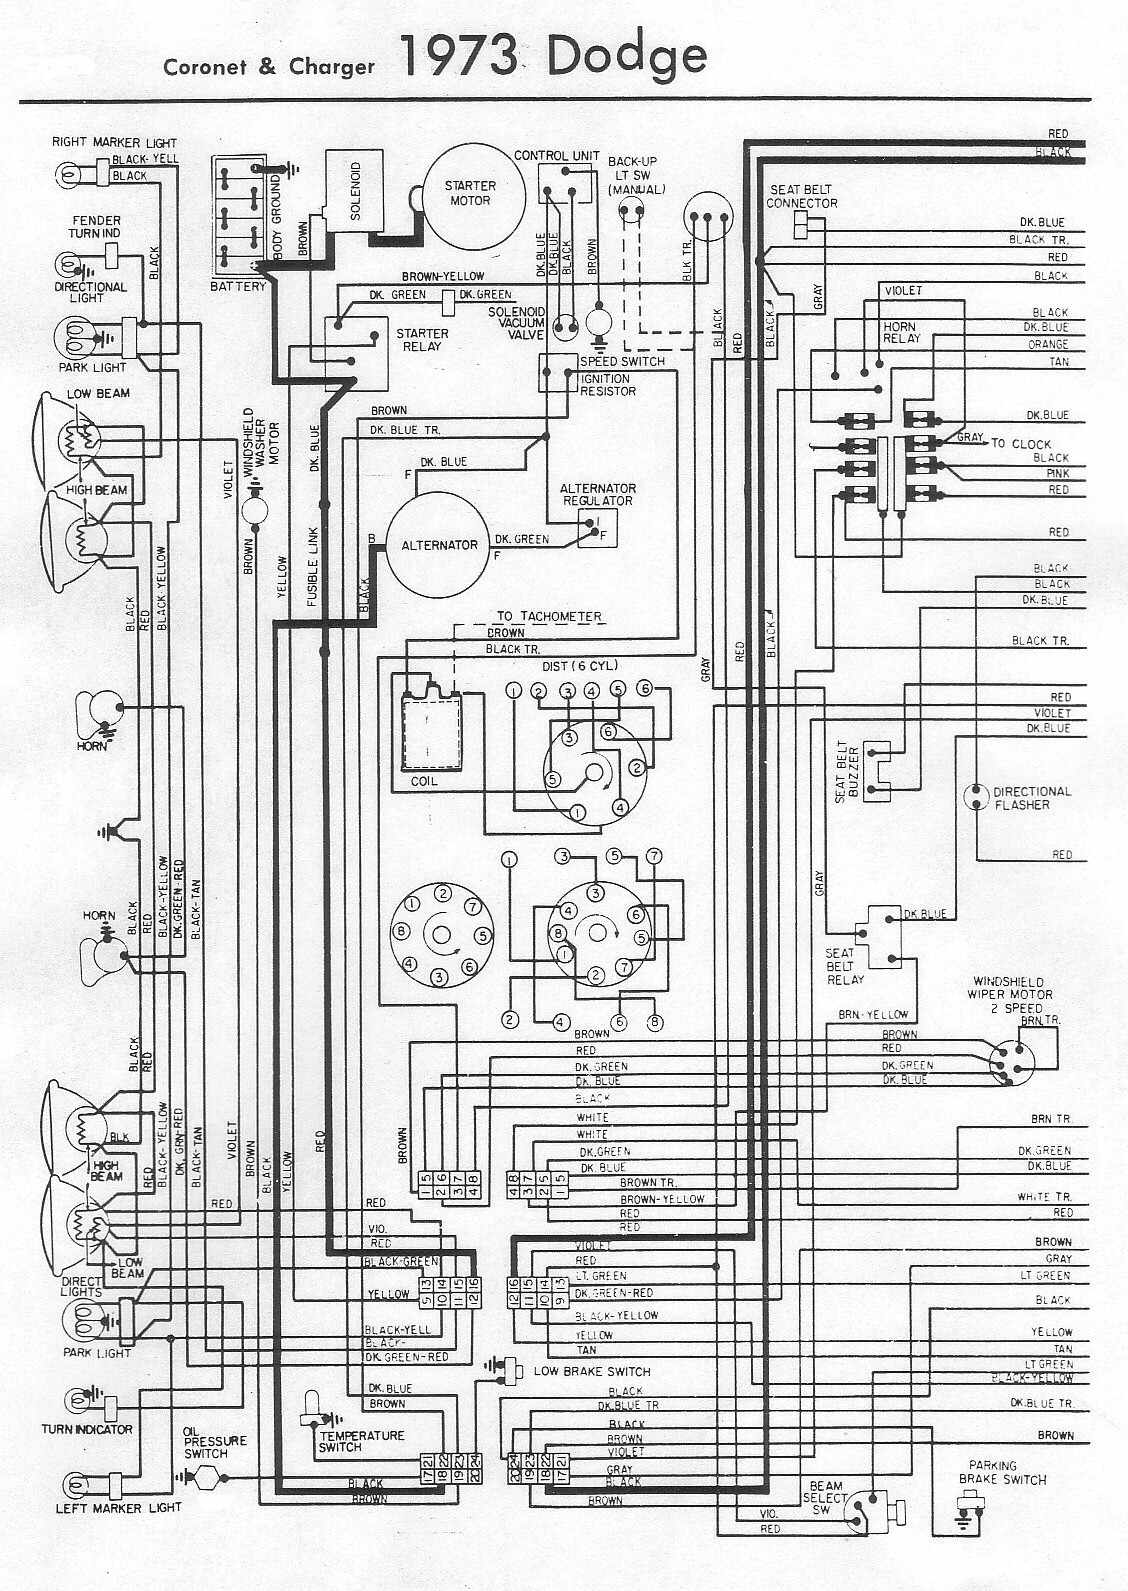 Automotive Wiring Diagrams Pdf - Wiring Diagrams on